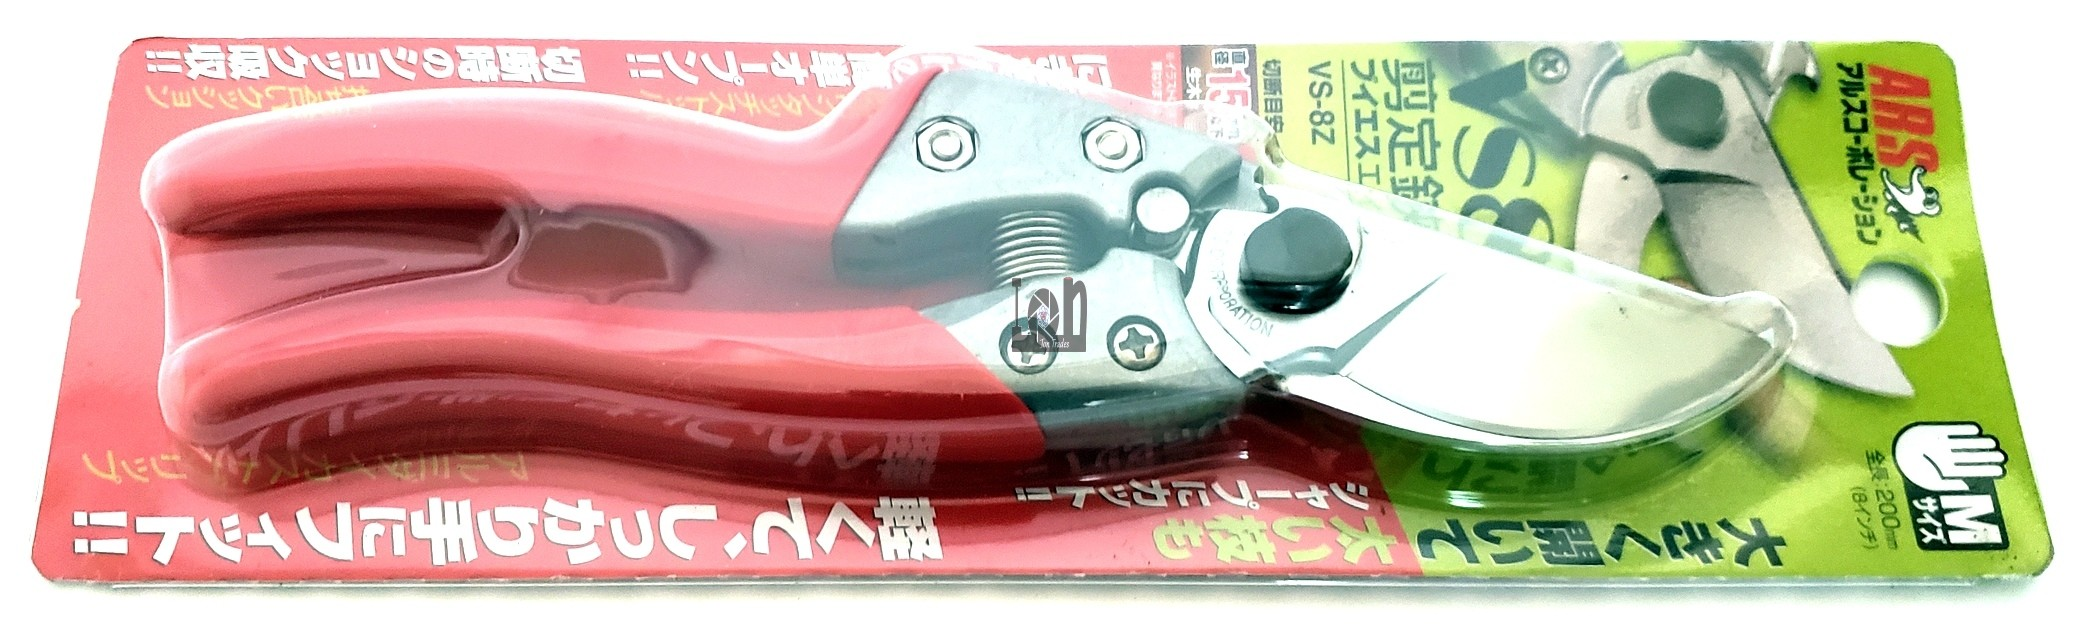 ARS Corporation VS-8Z Pruning Shears Japanese Tool Clippers